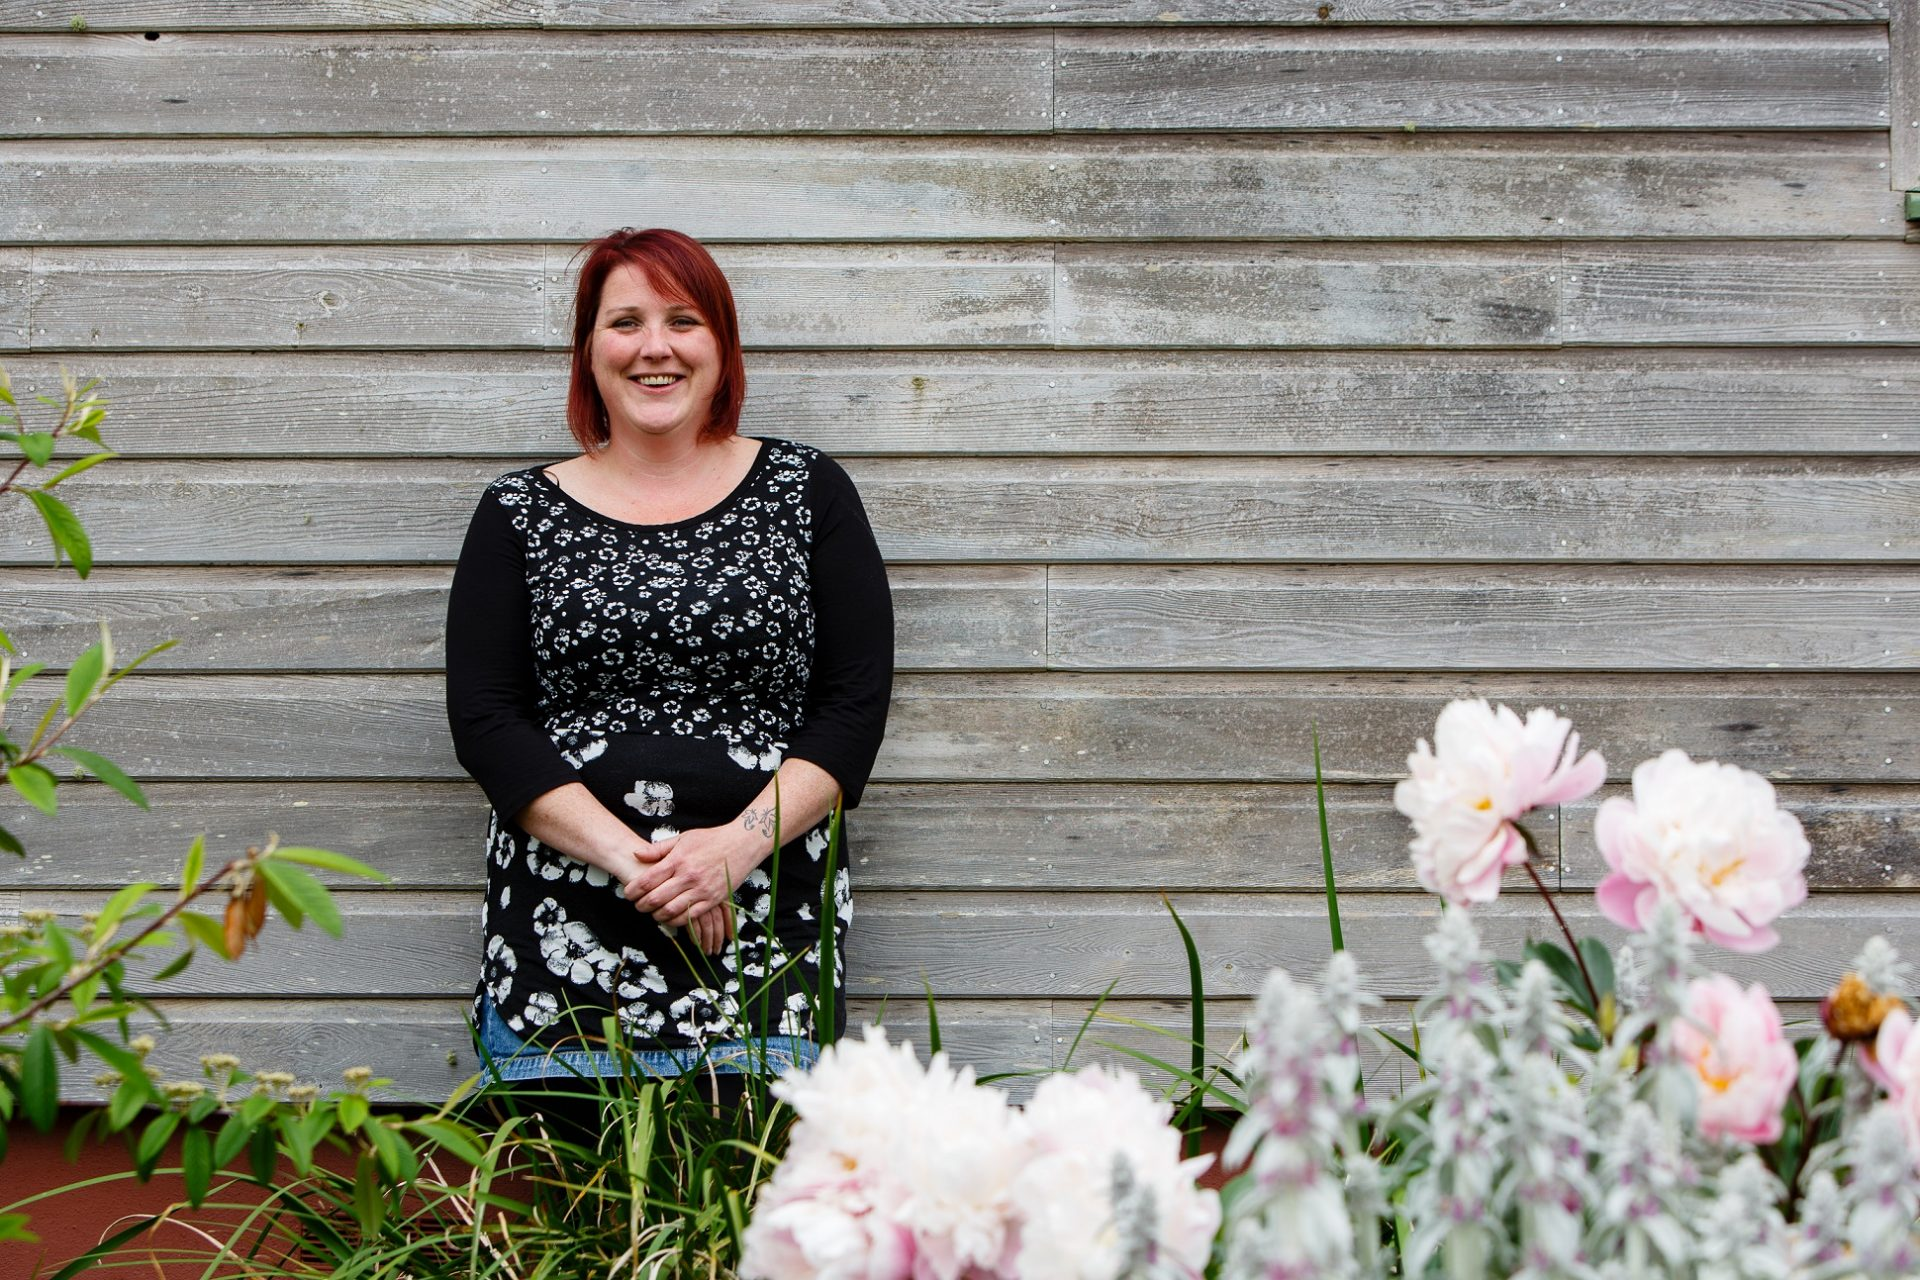 Britain's top florist to compete in Europa Cup